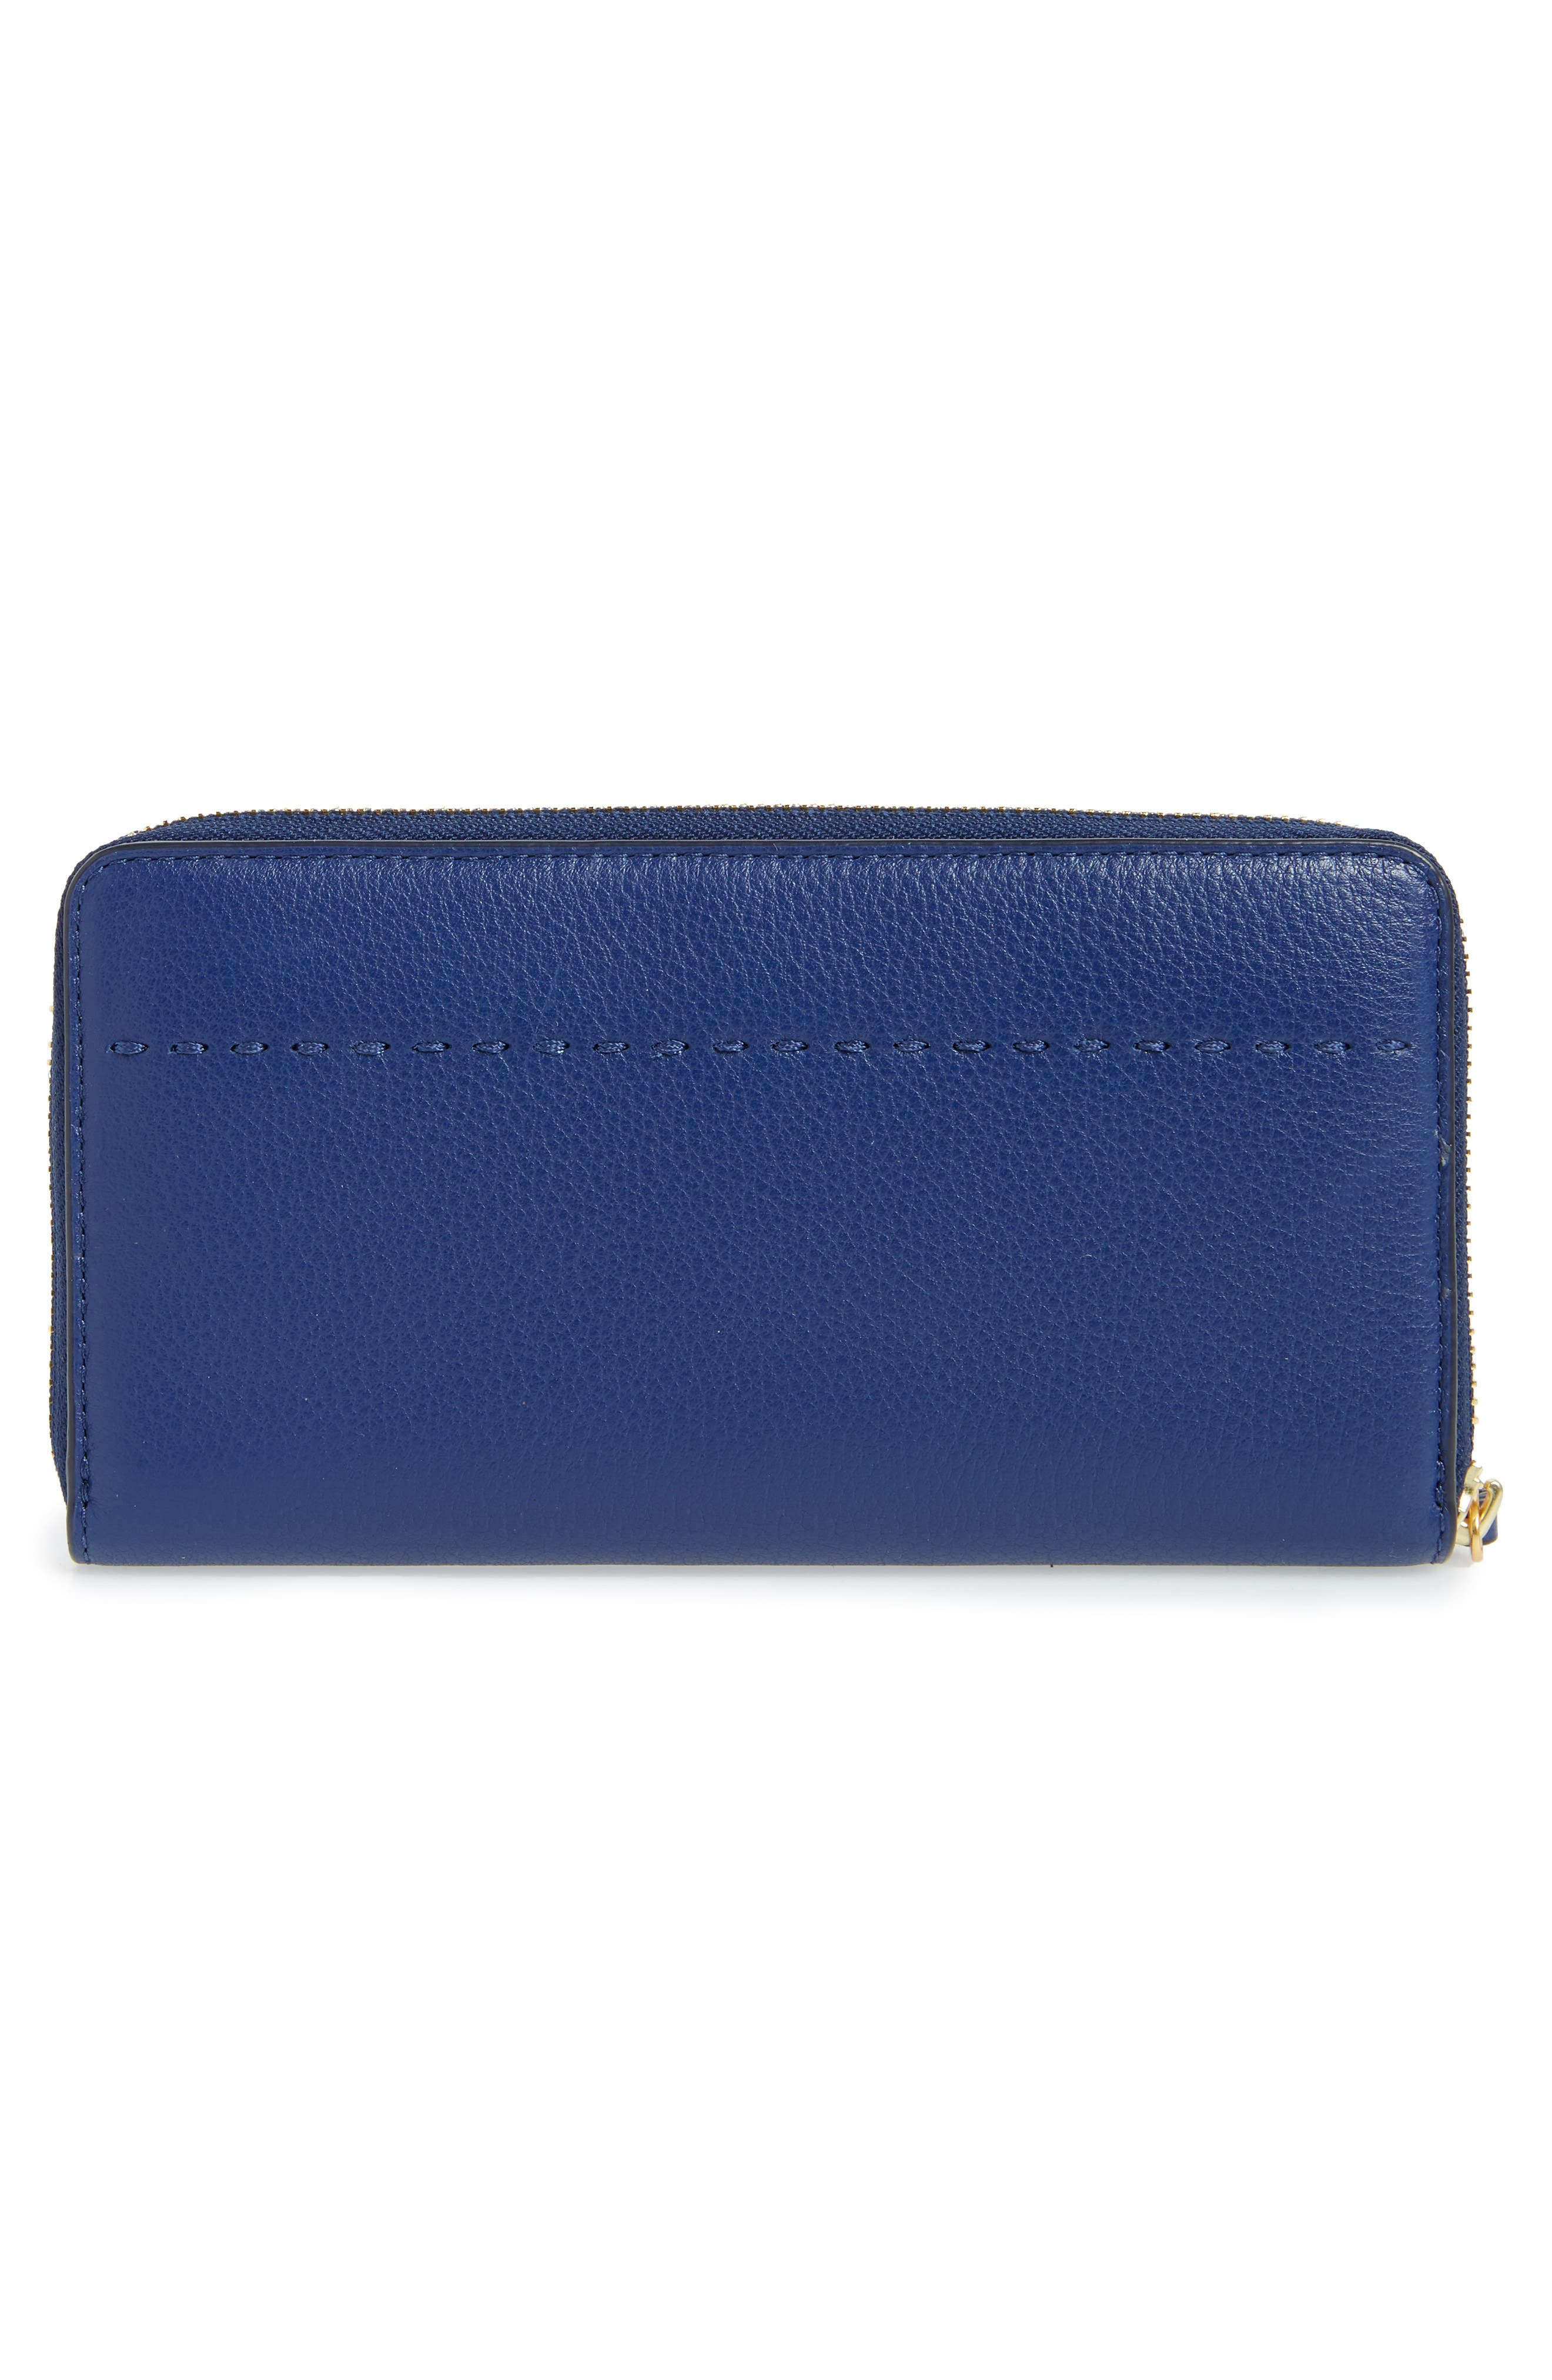 McGraw Leather Continental Zip Wallet,                             Alternate thumbnail 3, color,                             Bright Indigo